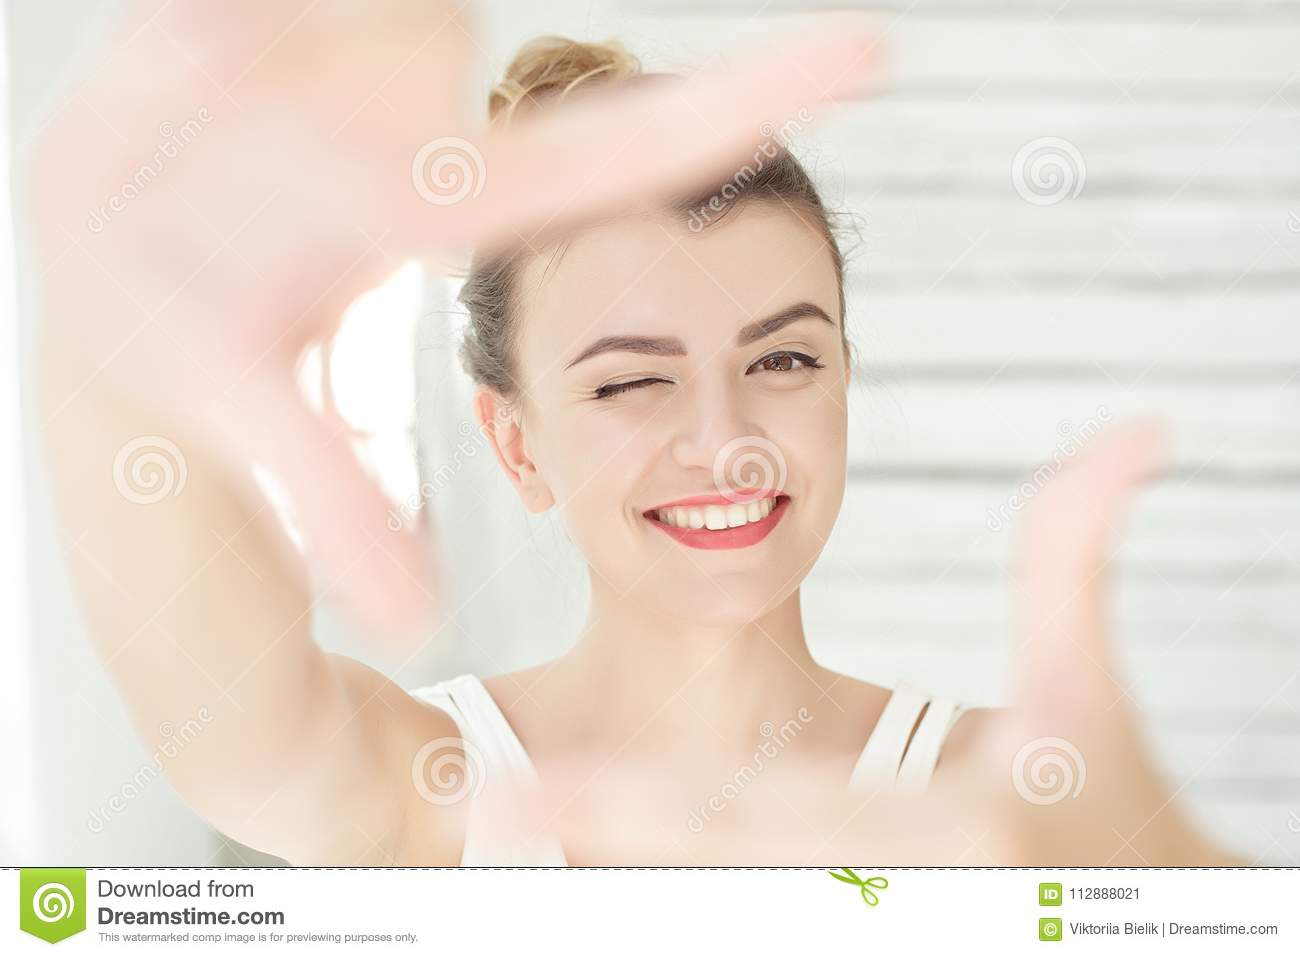 Pretty young woman making a frame gesture